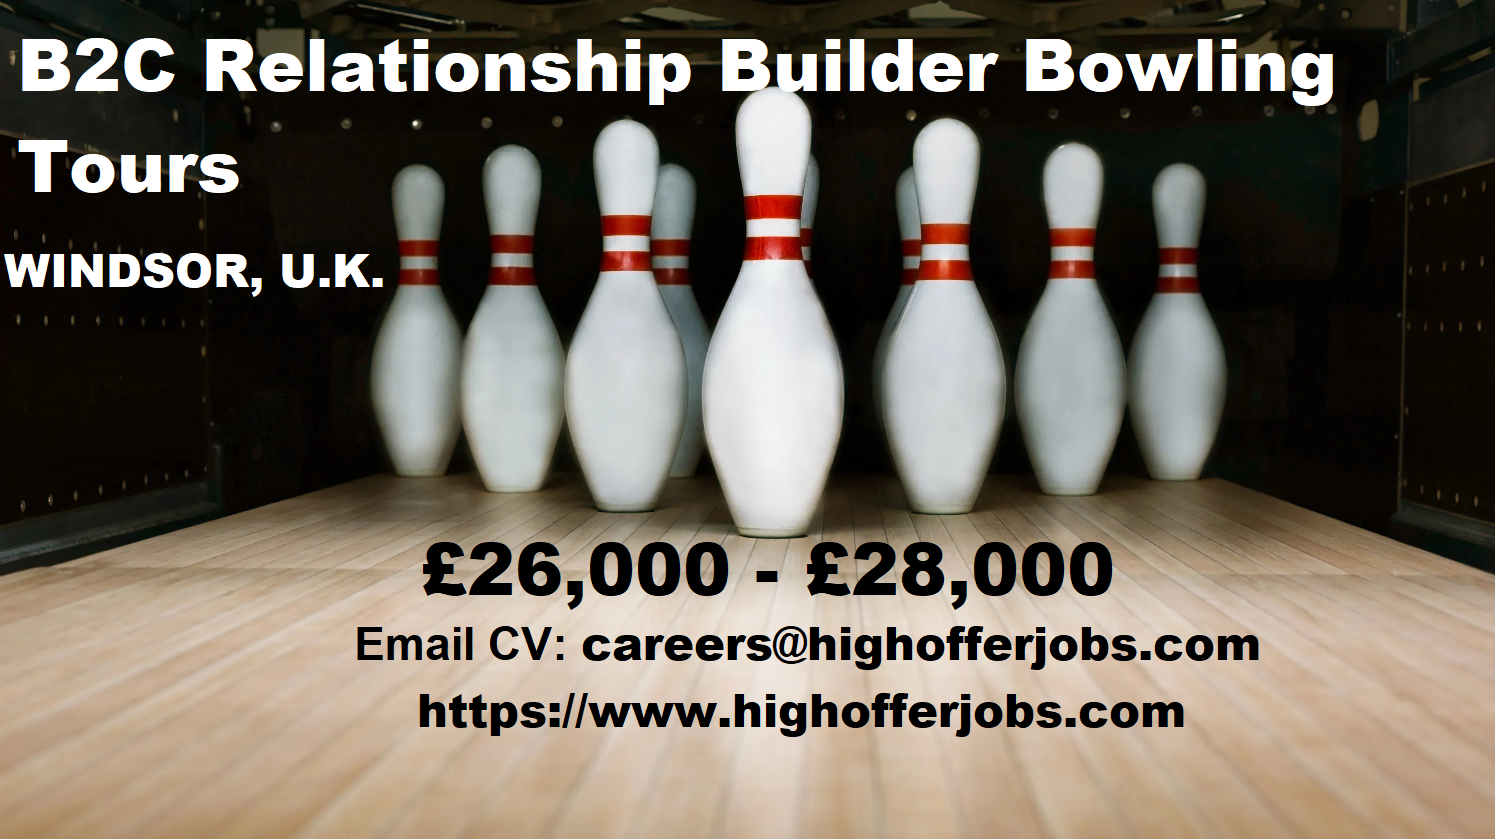 B2C Relationship Builder Position for Bowling Tours -£26K to 28K - Windsor UK